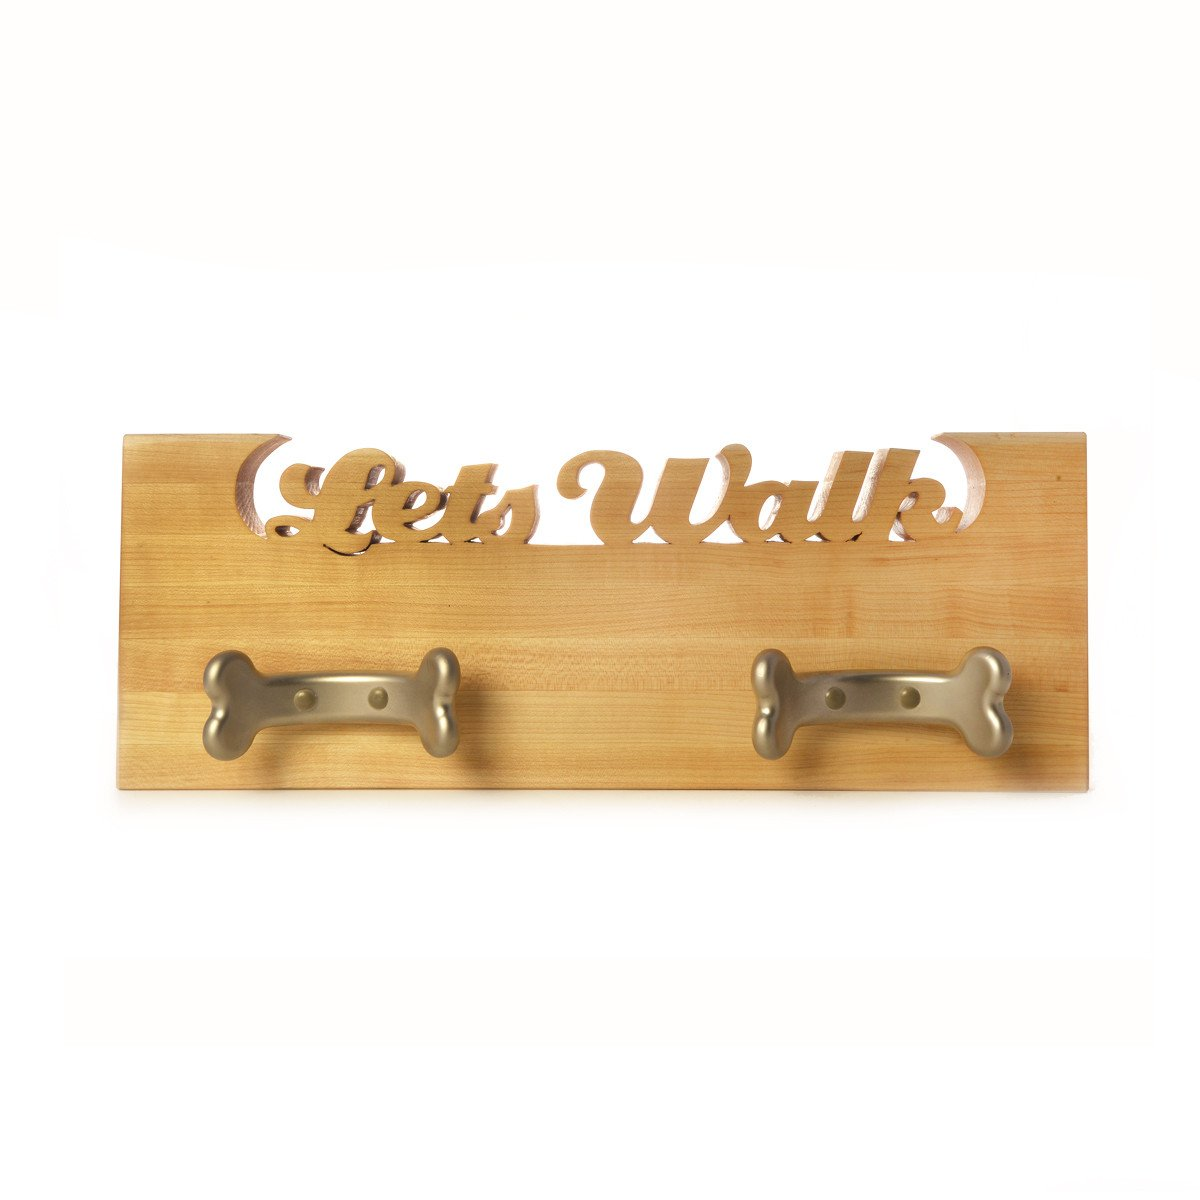 Leash board for dogs - dog leash hooks - dog leash holder - Words with Boards  - 1